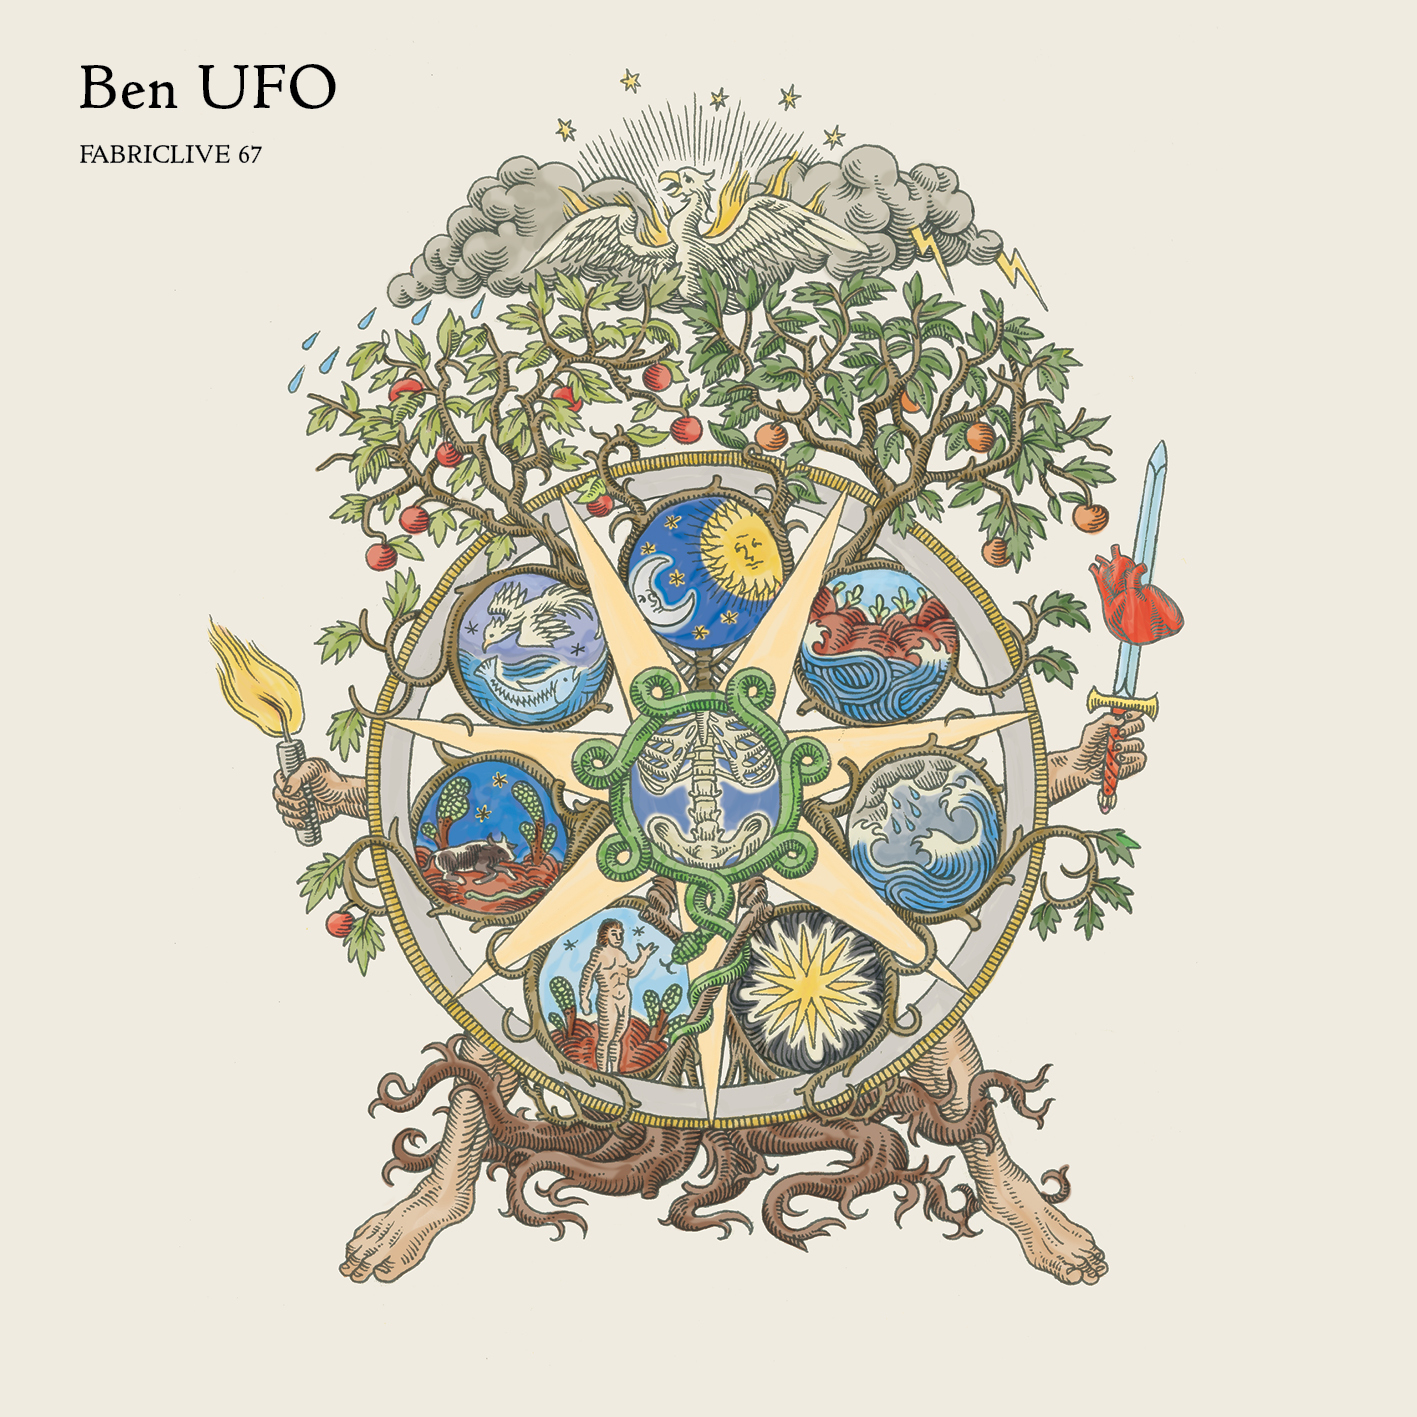 Ben UFO mixt FABRICLIVE 67